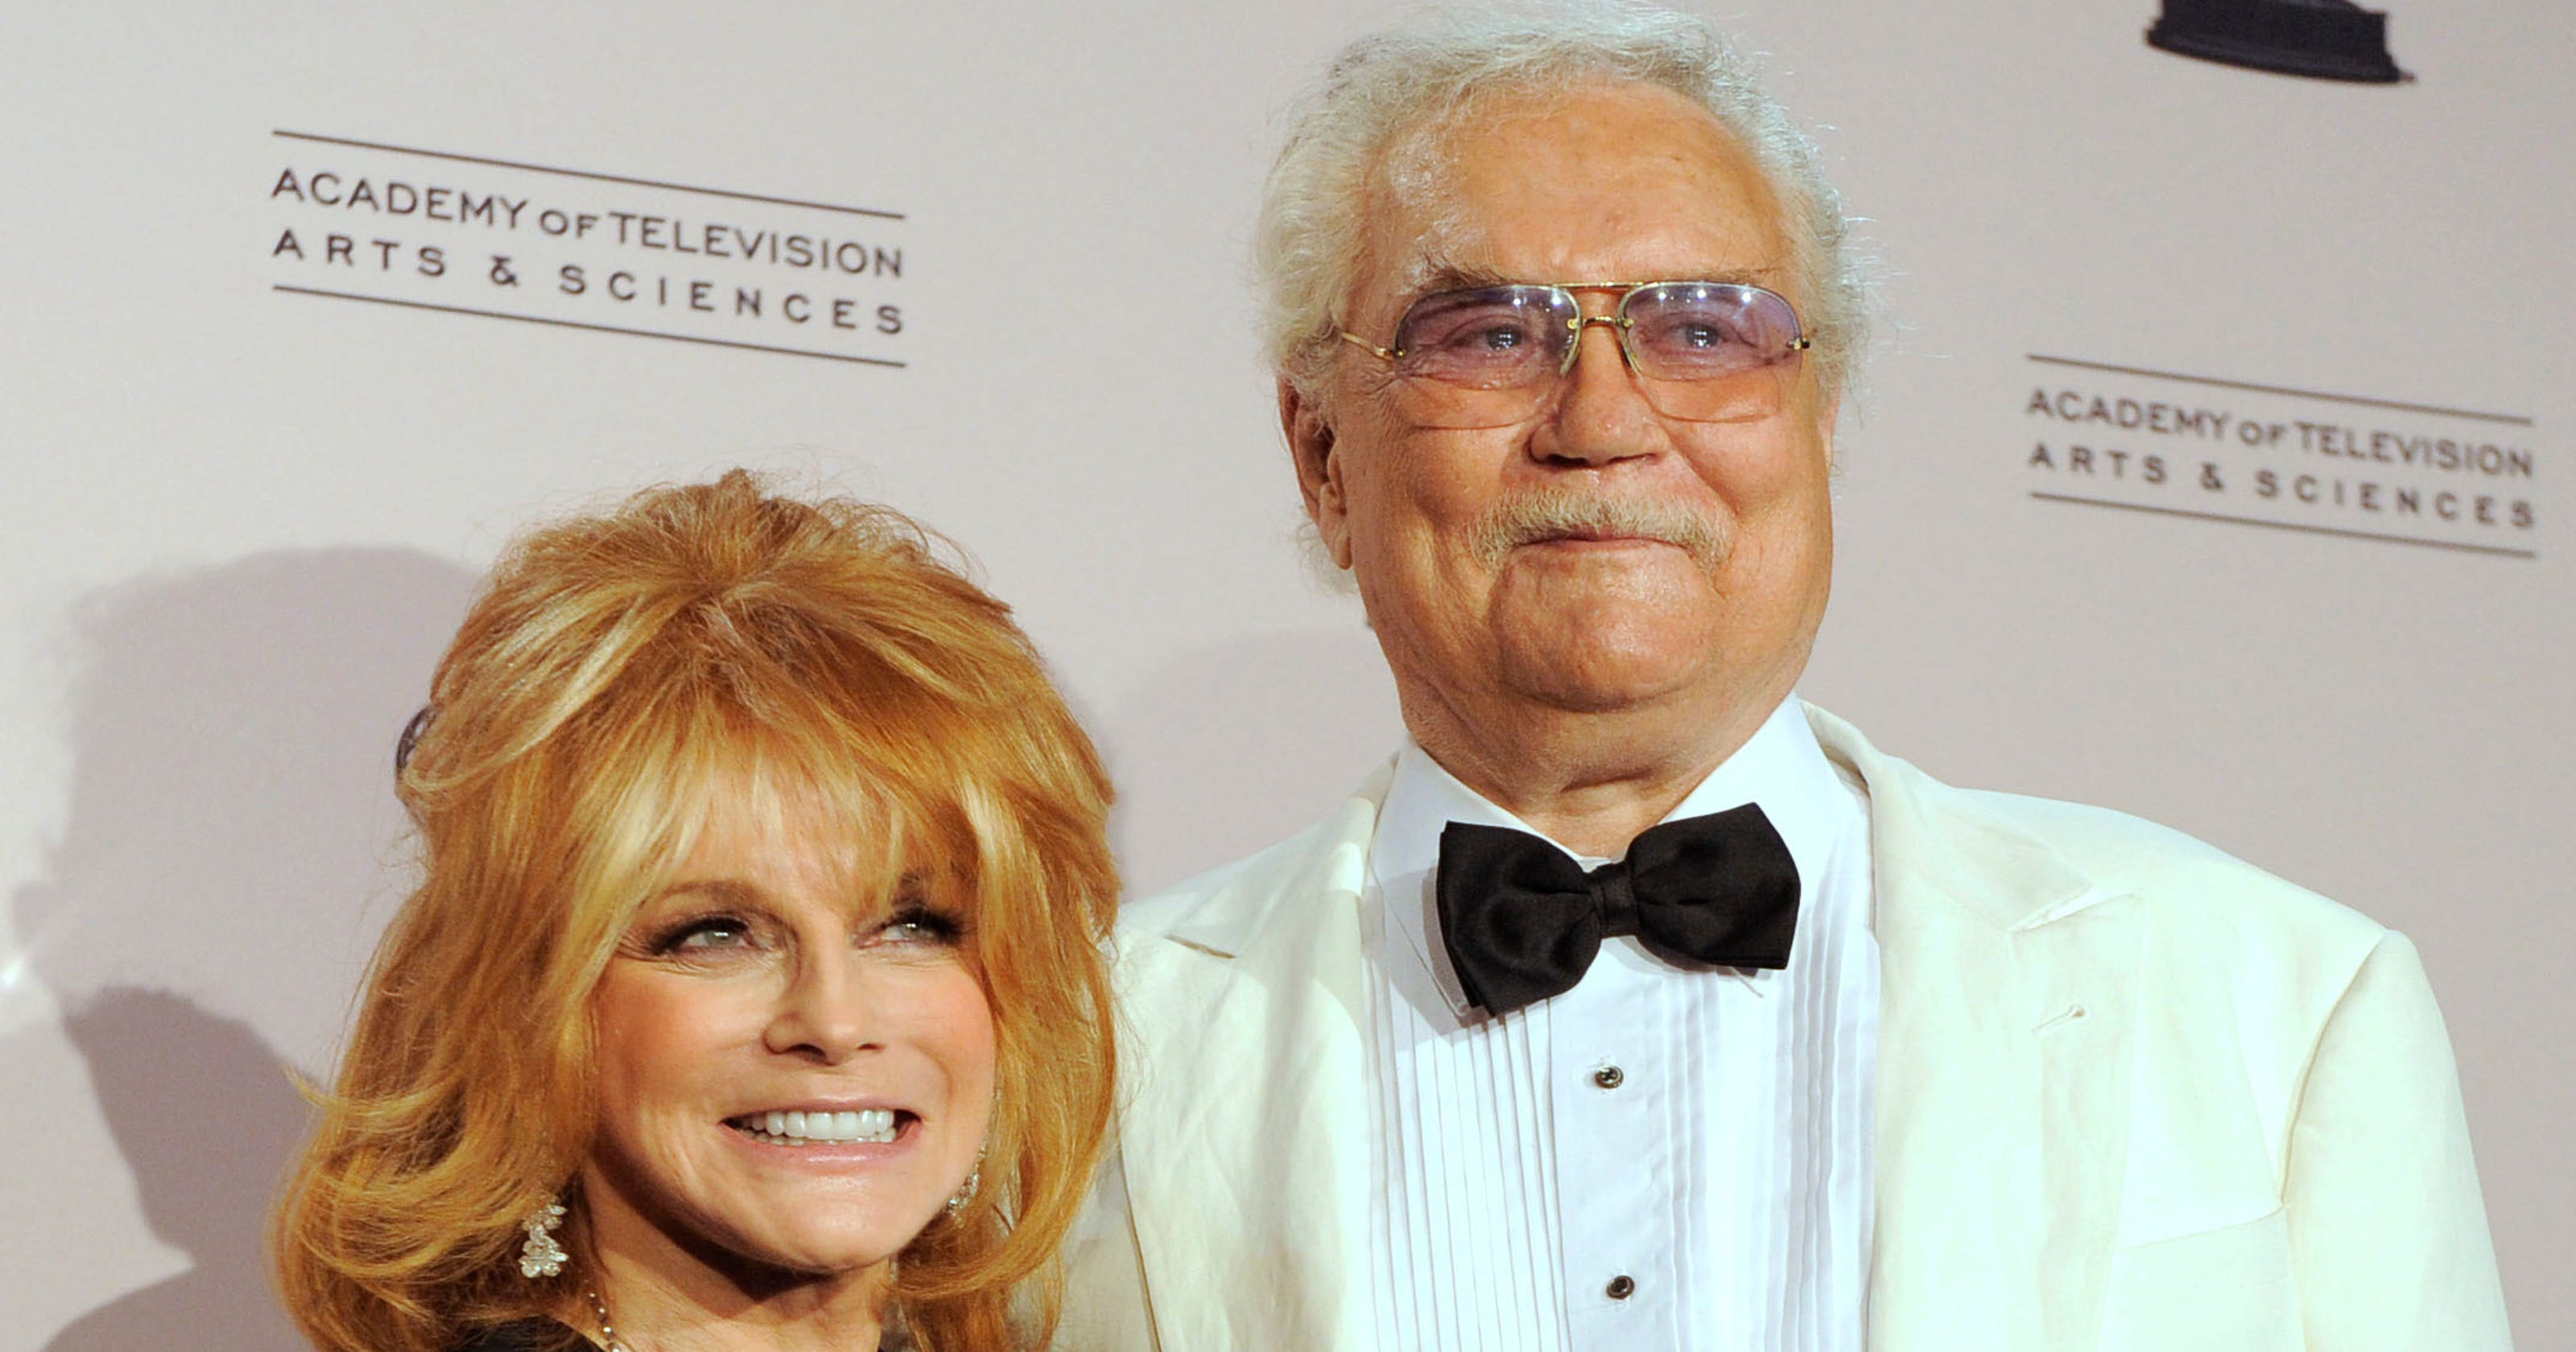 6436e4795b0c0 Roger Smith dies; Ann-Margret spouse and former heartthrob on TV's '77  Sunset Strip'